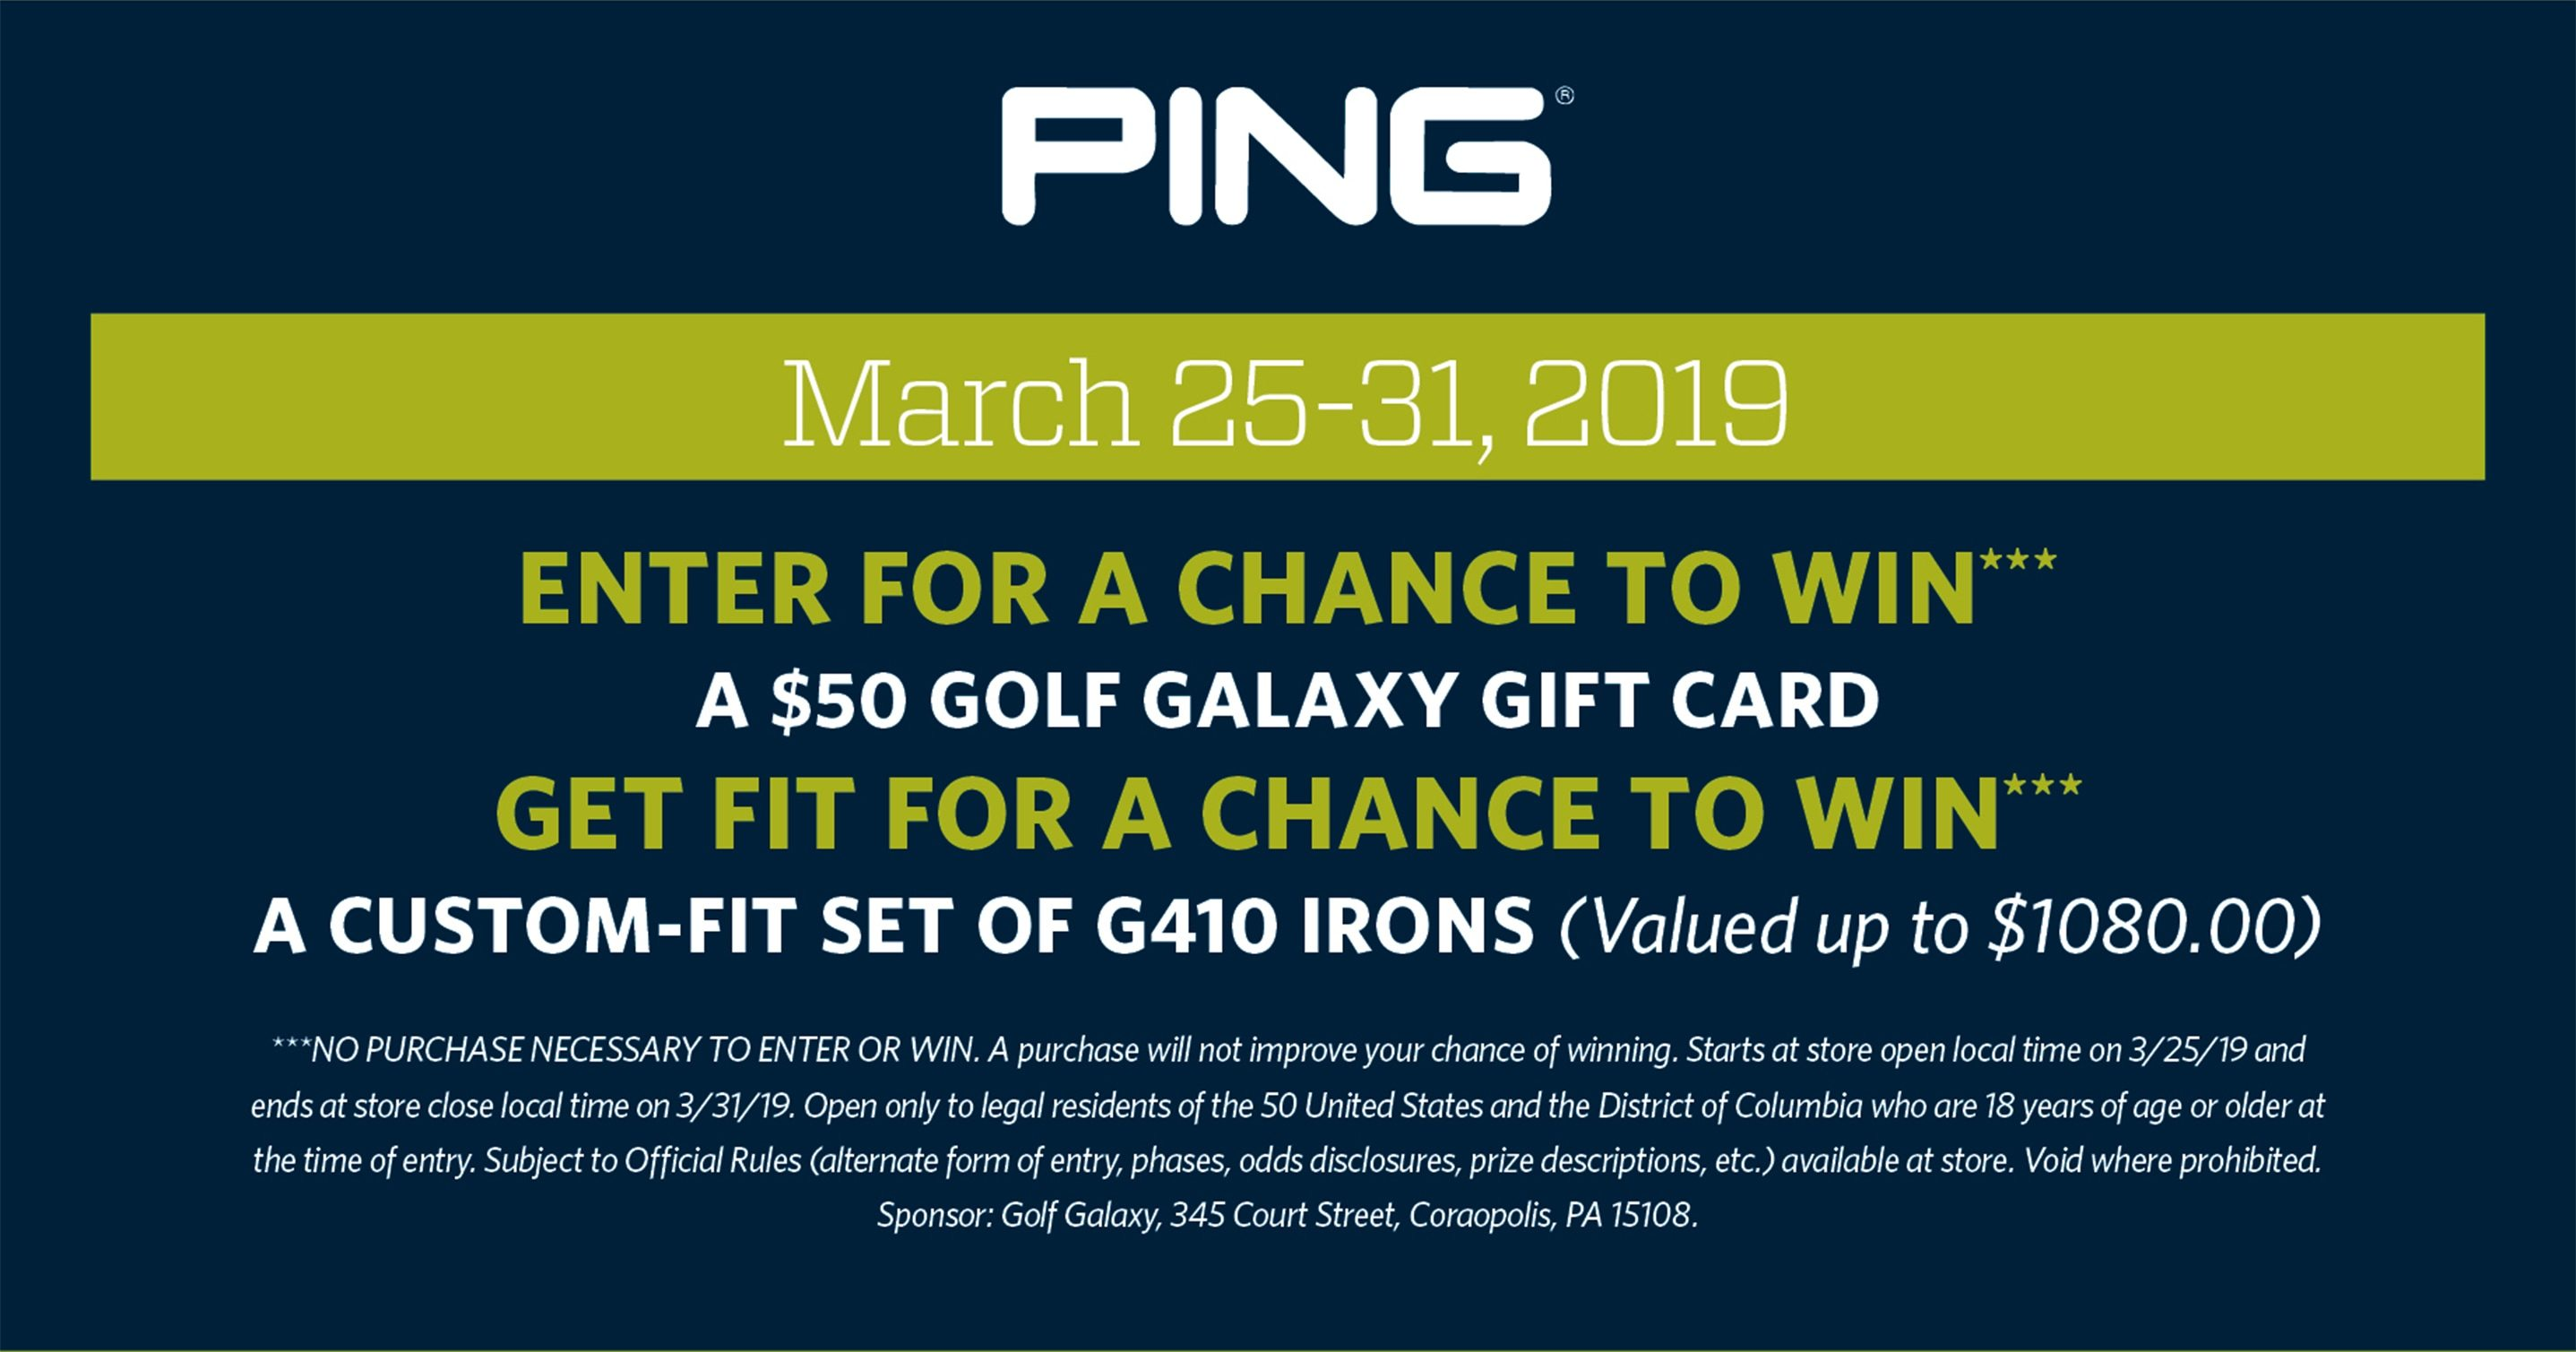 PING | March 25-31, 2019 | Enter for a Chance to Win*** A $50 Golf Galaxy gift card GET FIT for a Chance to Win*** A custom-fit set of G410 Irons (Valued up to $1080.00) ***NO PURCHASE NECESSARY TO ENTER OR WIN. A purchase will not improve your chance of winning. Starts at store open local time on 3/25/19 and ends at store close local time on 3/31/19. Open only to legal residents of the 50 United States and the District of Columbia who are 18 years of age or older at the time of entry. Subject to Official Rules (alternate form of entry, phases, odds disclosures, prize descriptions, etc.) available at store. Void where prohibited. Sponsor: Golf Galaxy, 345 Court Street, Coraopolis, PA 15108.